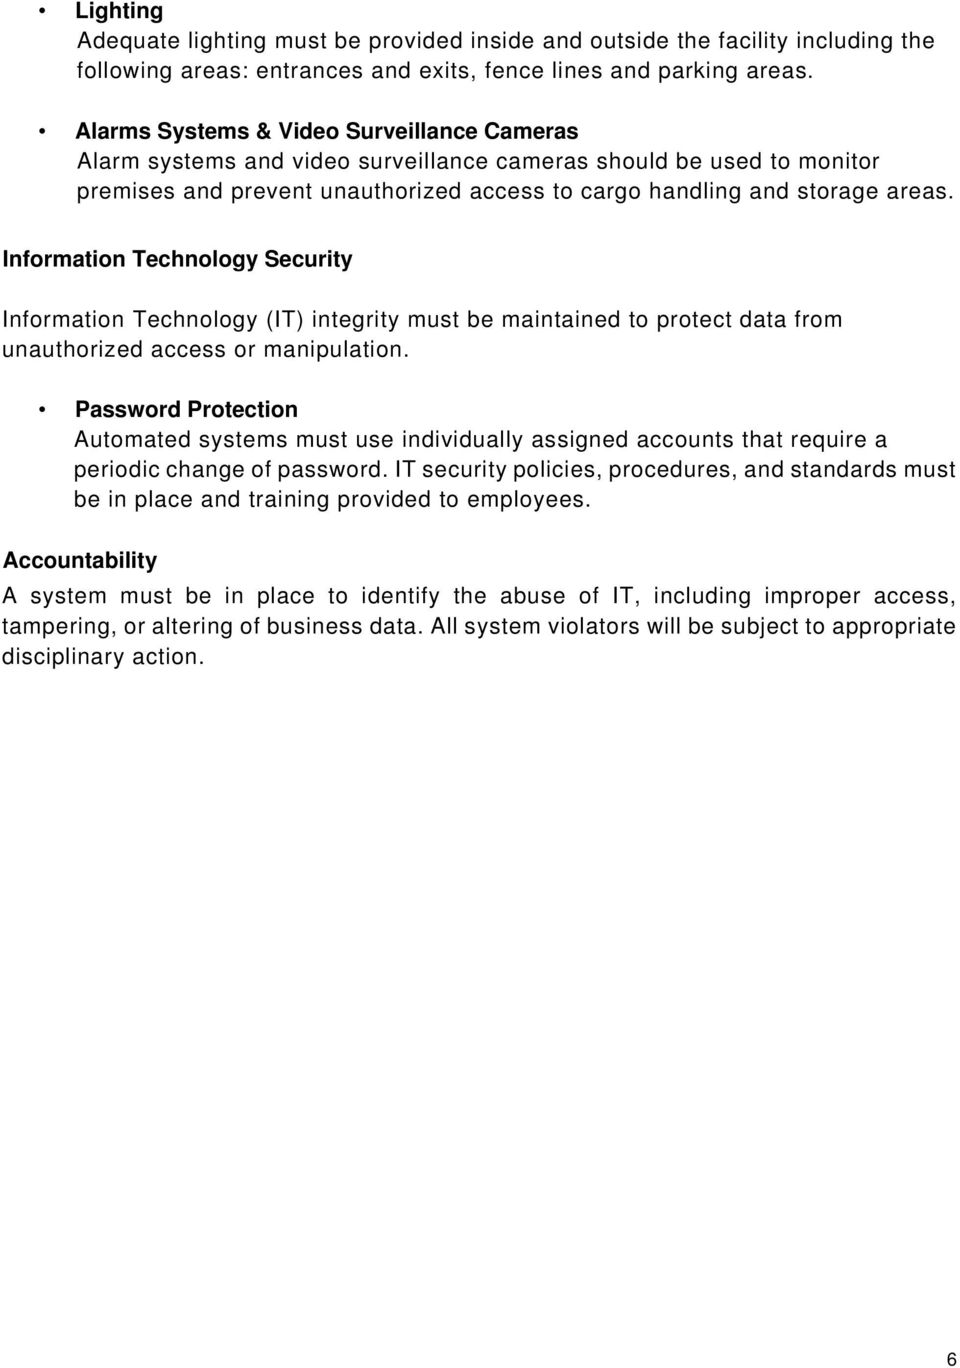 Information Technology Security Information Technology (IT) integrity must be maintained to protect data from unauthorized access or manipulation.